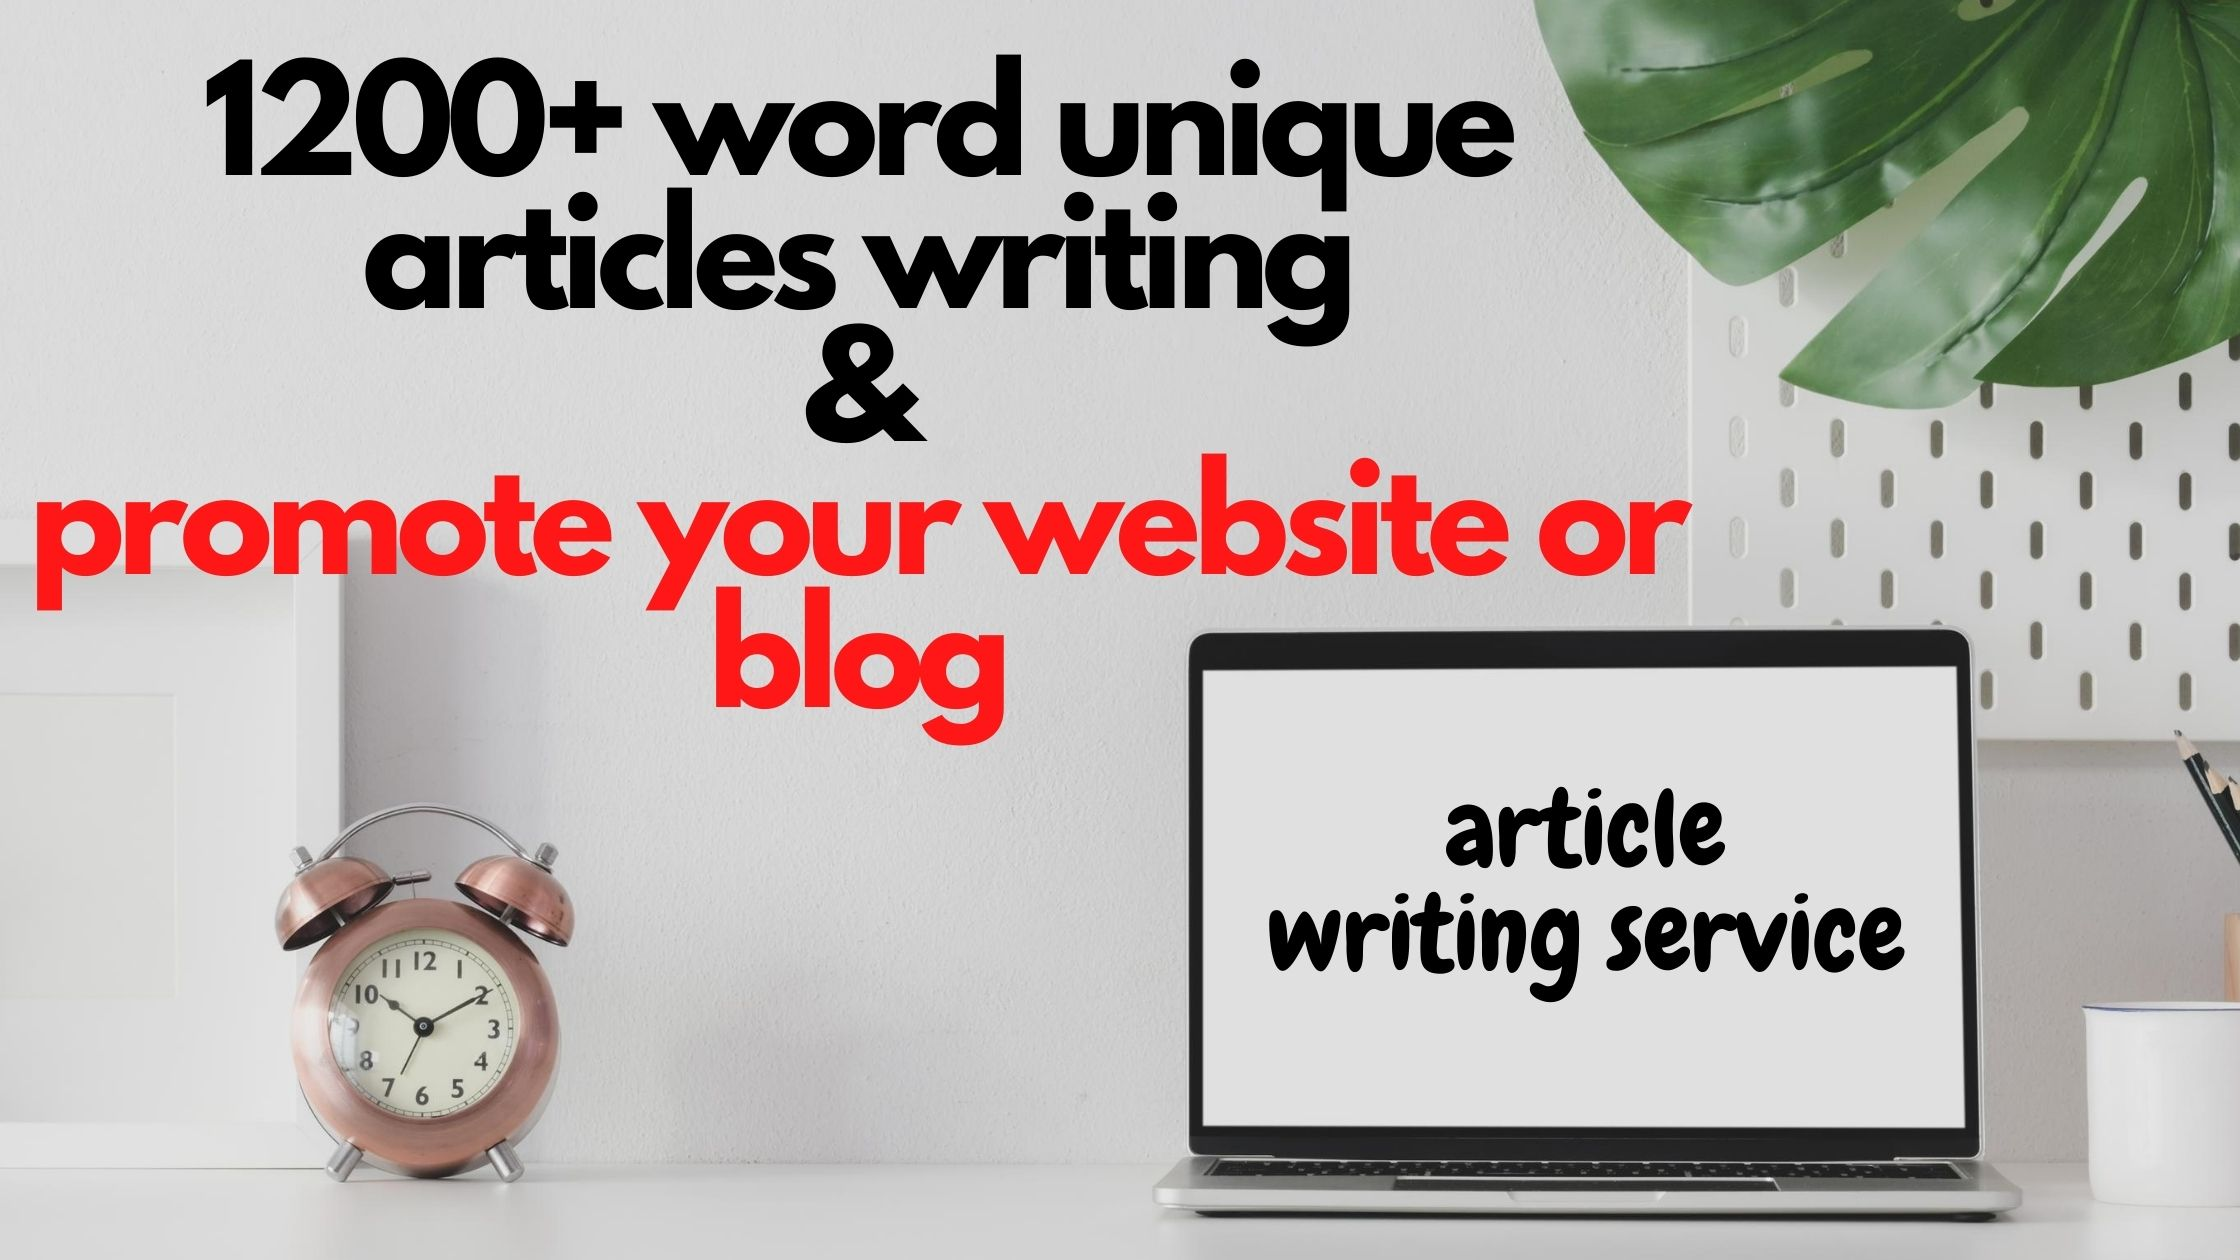 1200+ words article writing for your website/blog.